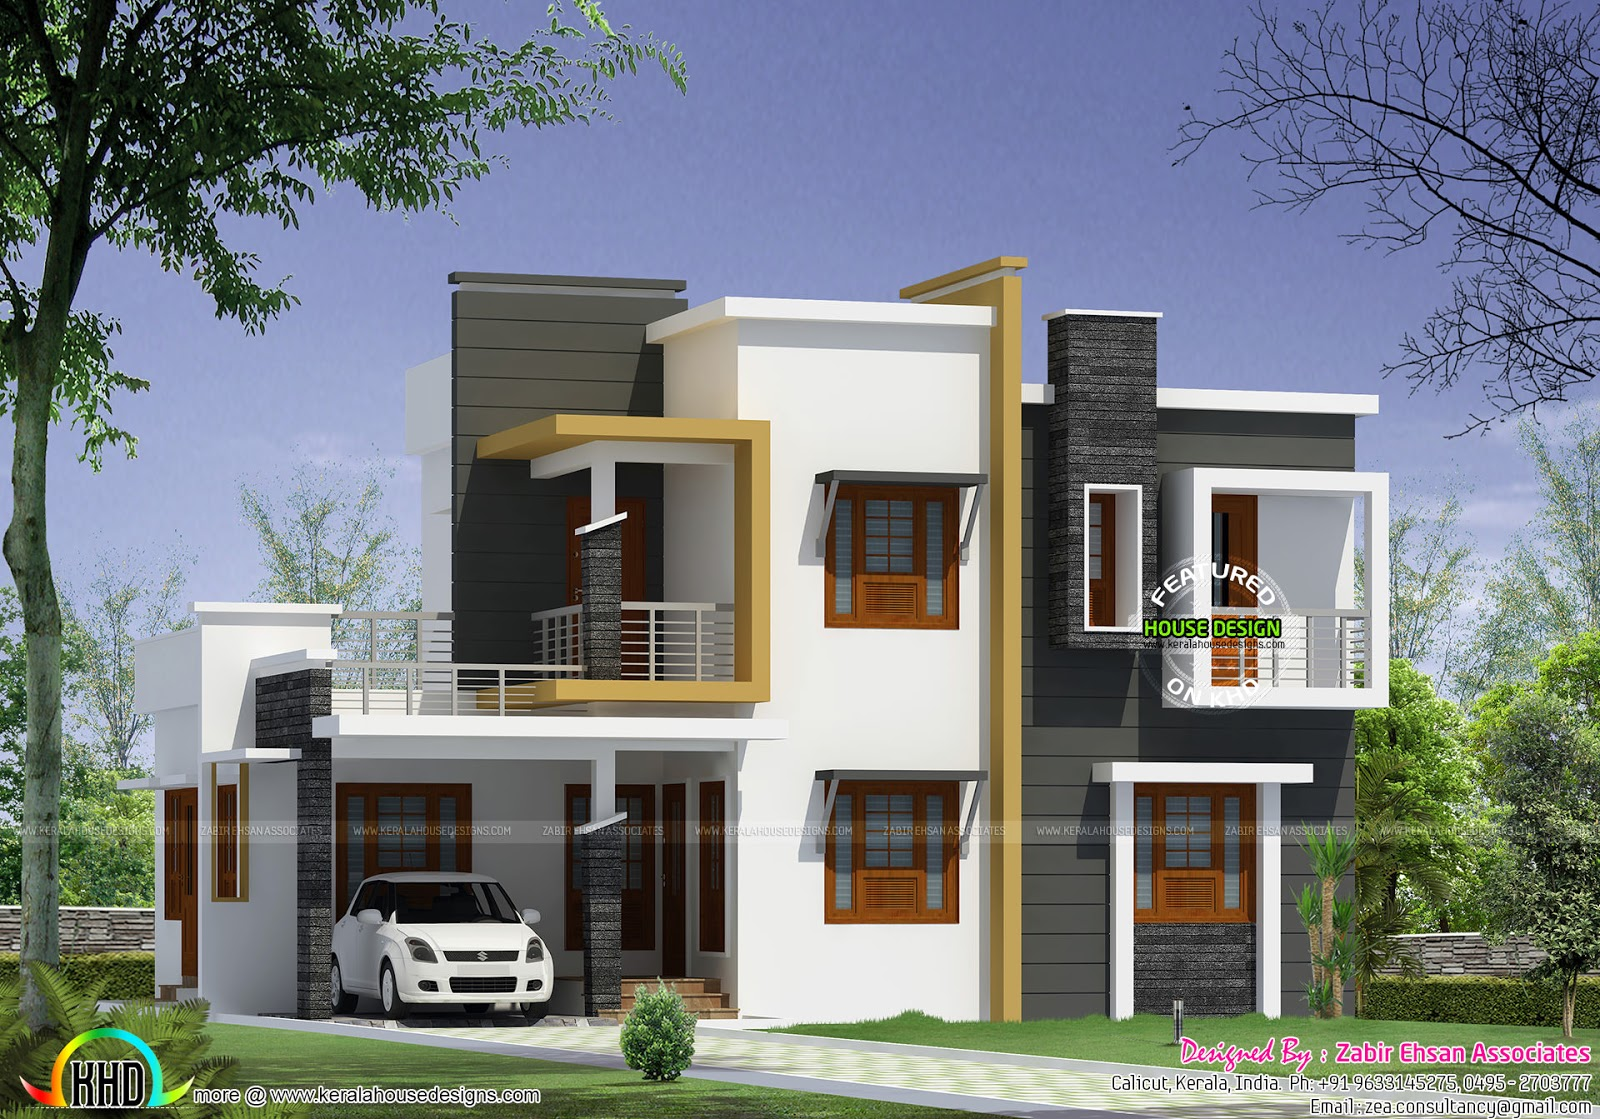 Box type modern house plan kerala home design and floor for House designs online